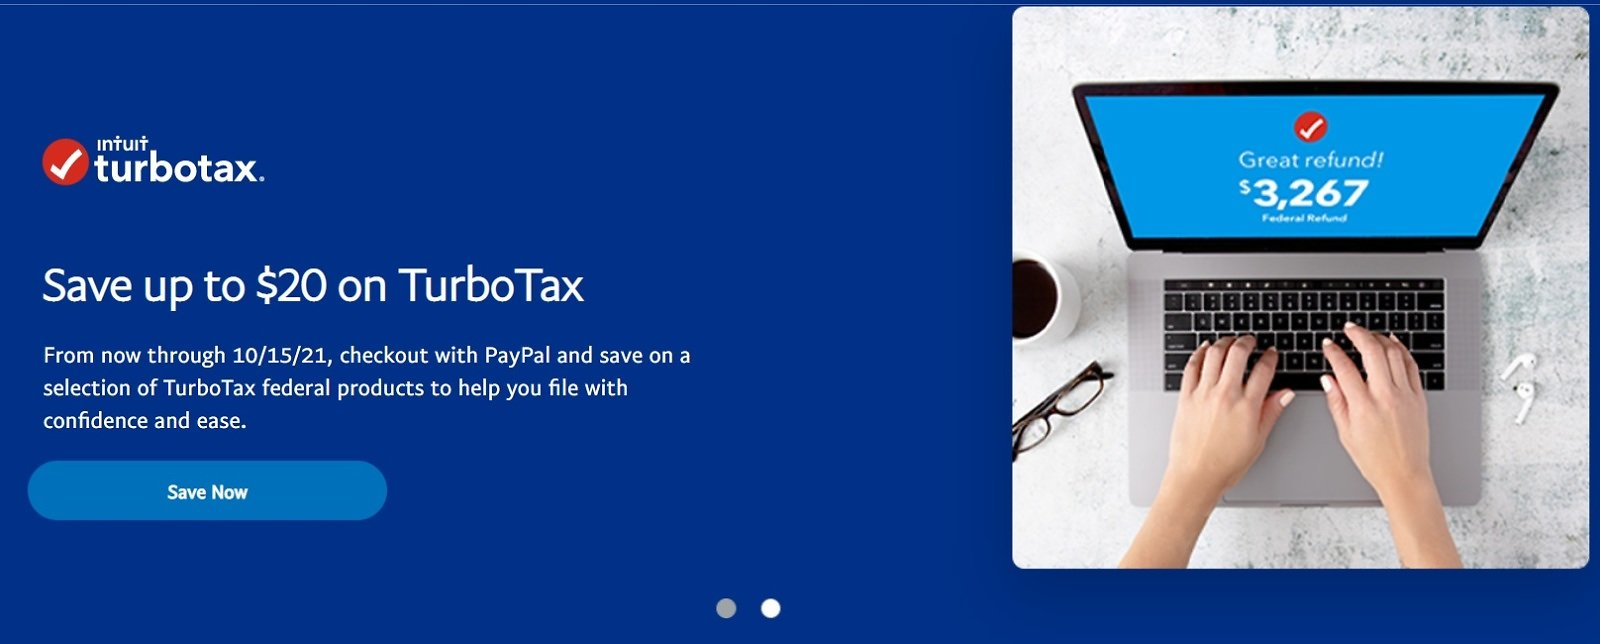 Up to $20 On TurboTax